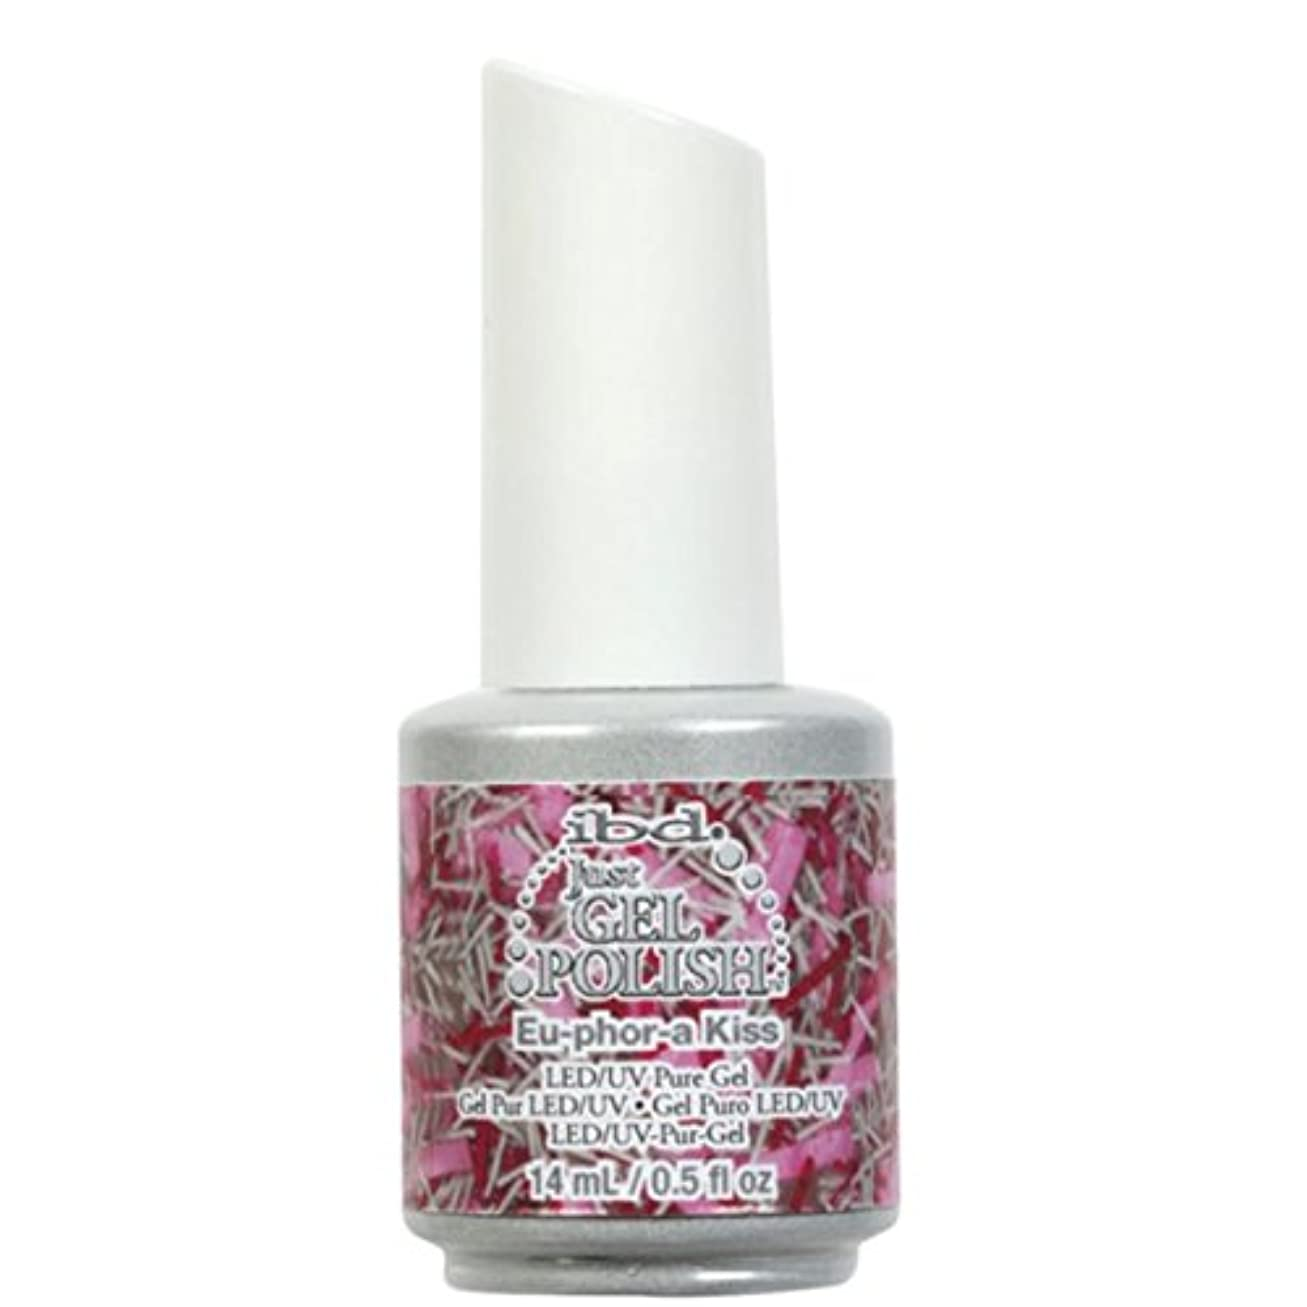 航空会社評価ロビーibd Just Gel Nail Polish - Eu-Phor-A Kiss - 14ml / 0.5oz